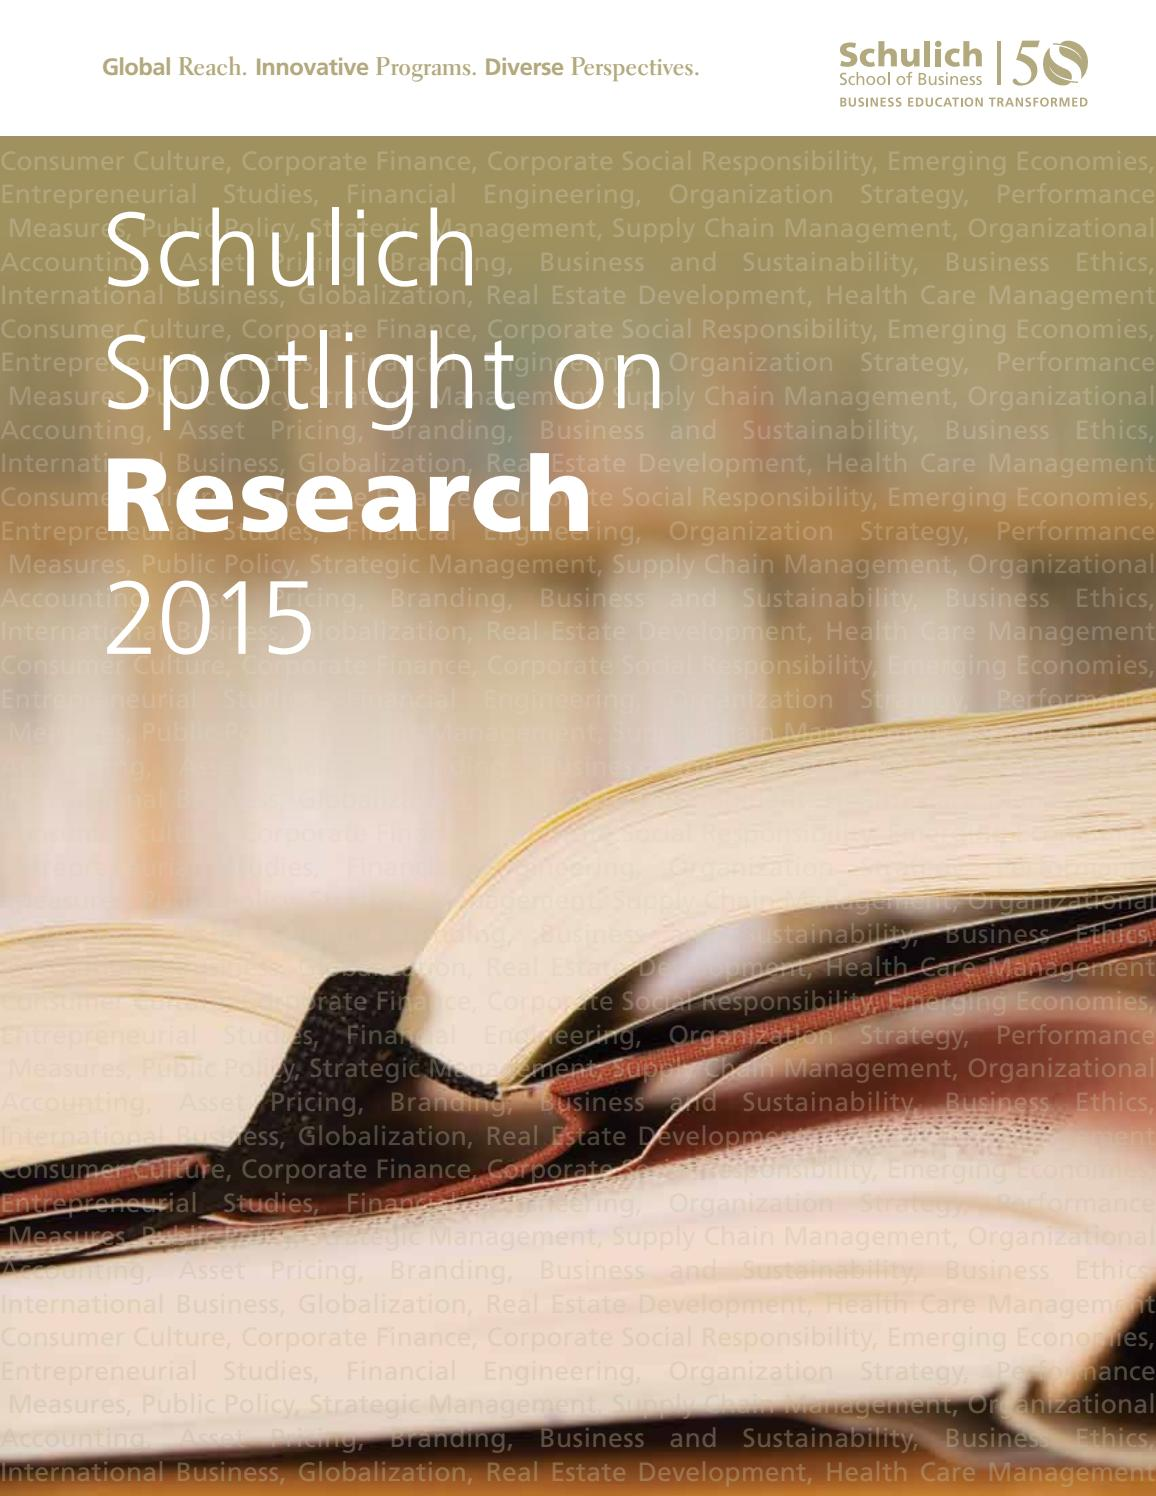 Schulich Spotlight on Research 2015 by Schulich School of